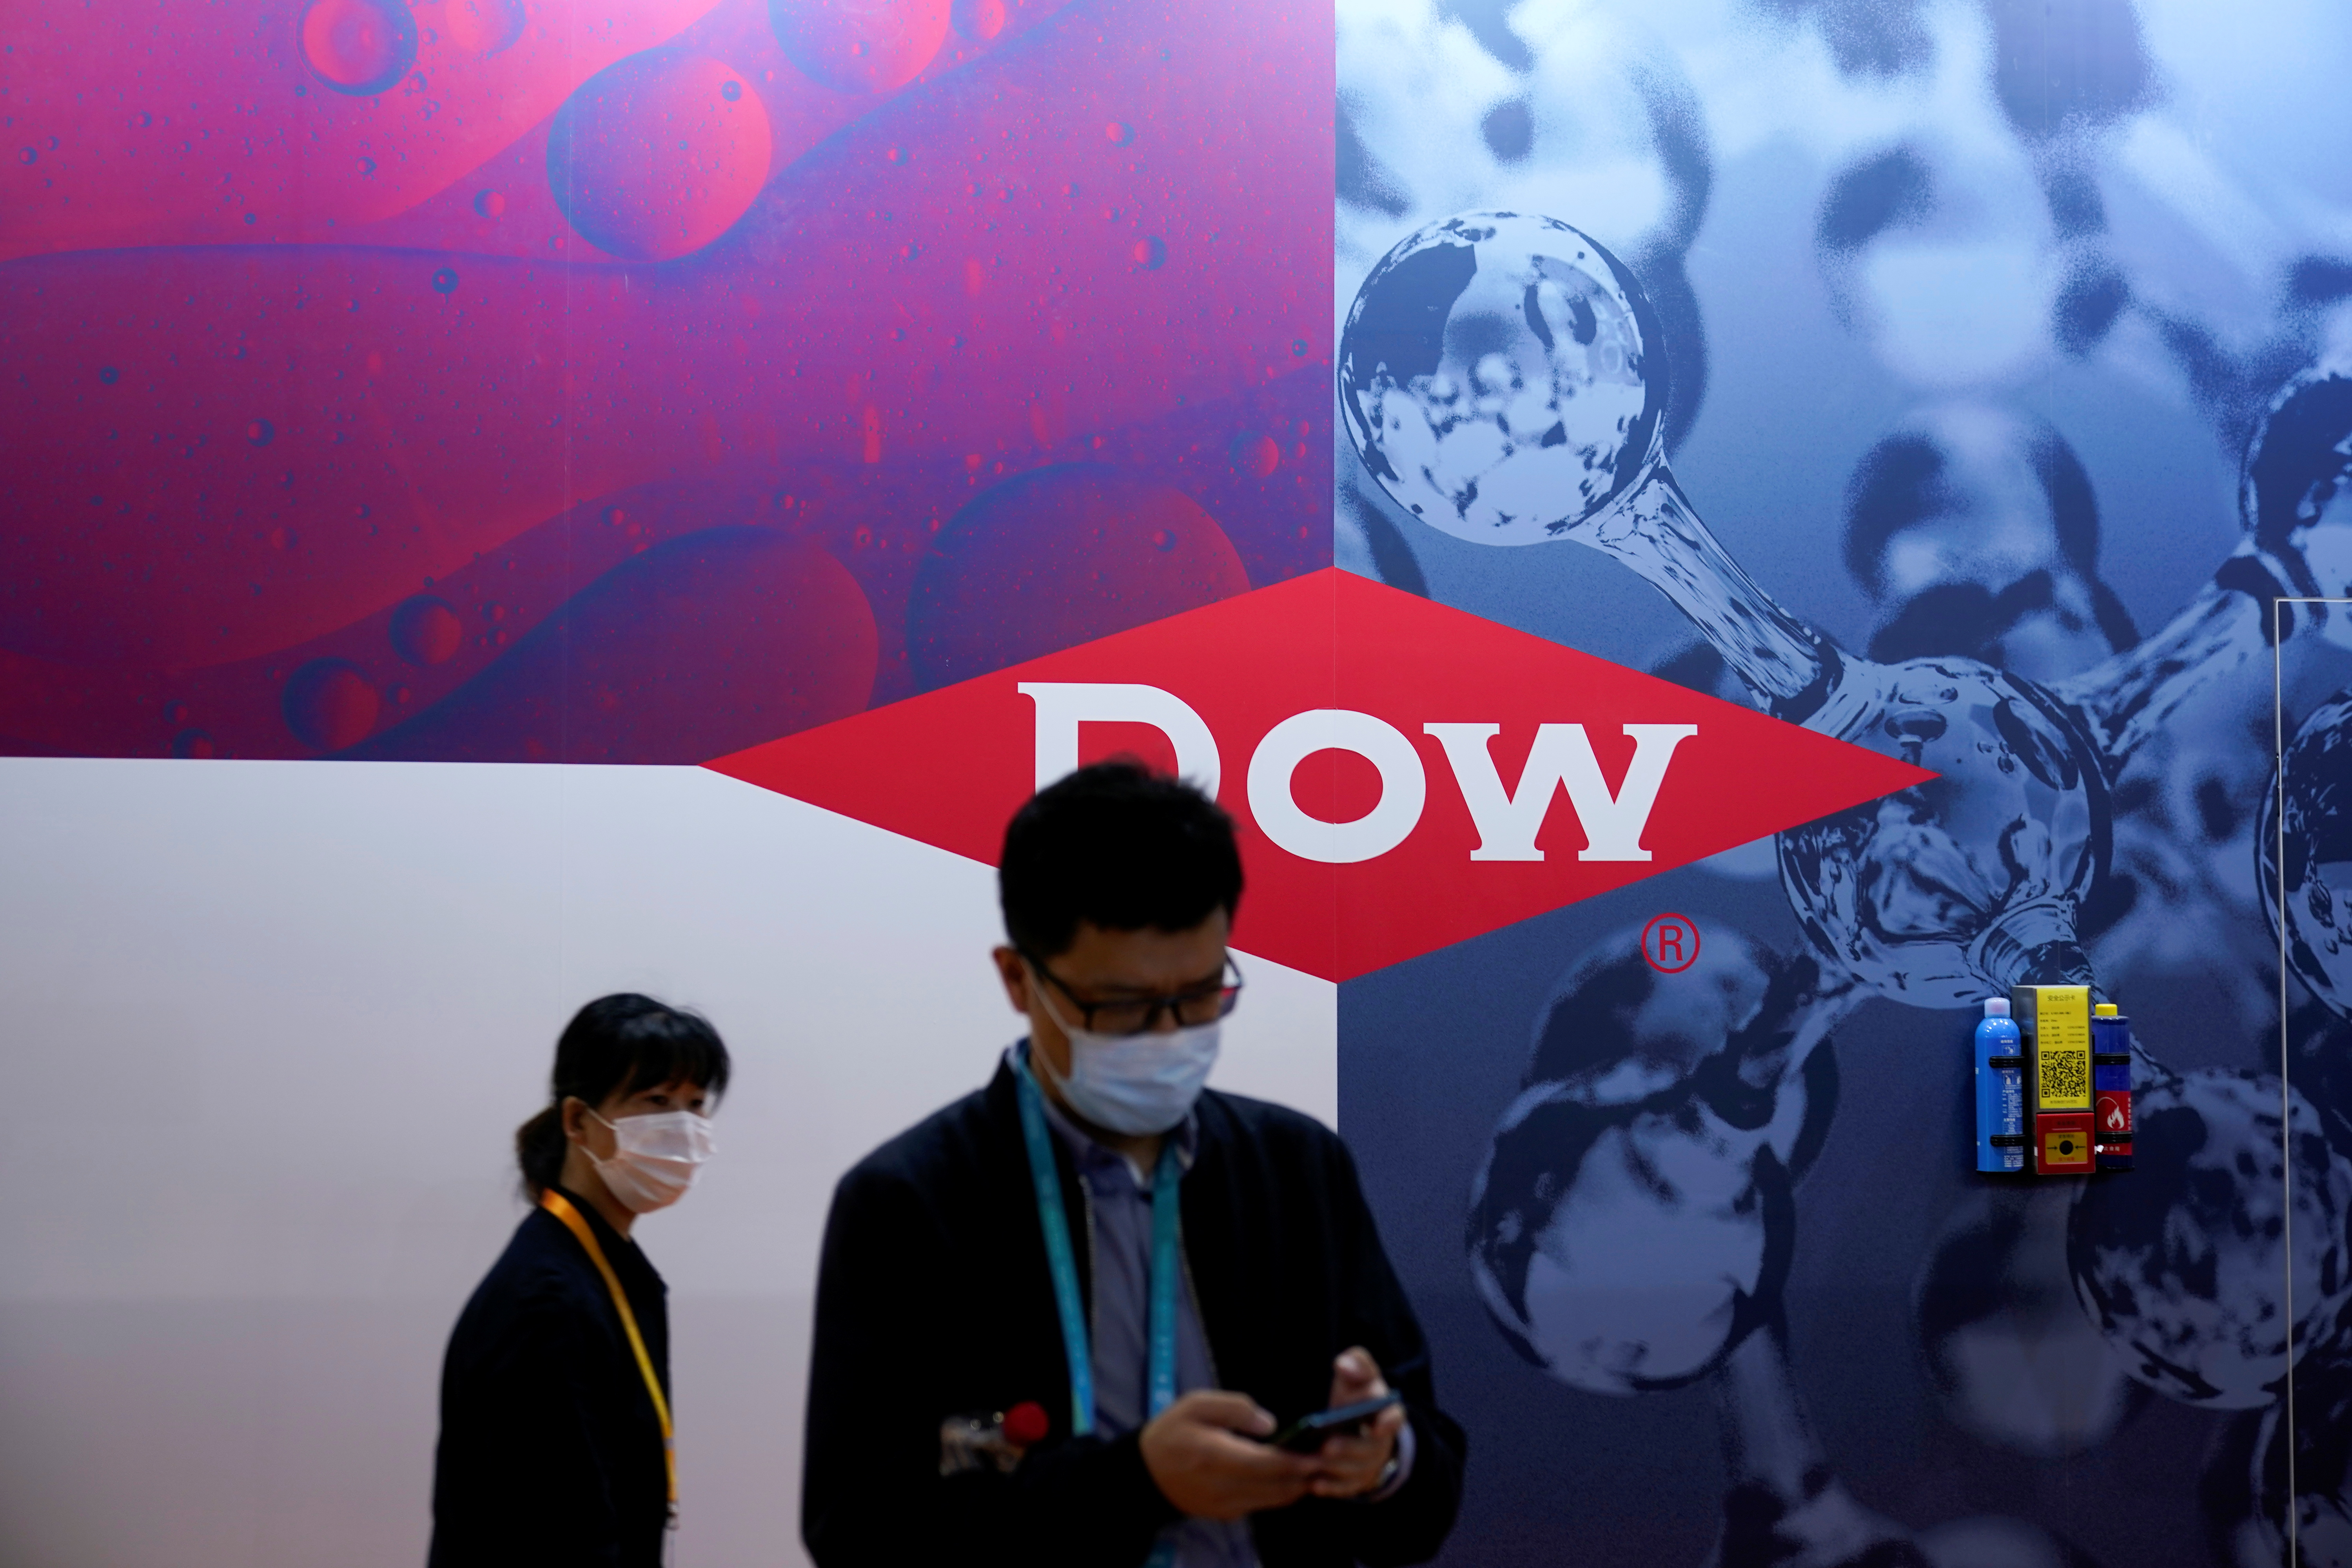 A Dow sign is seen at the third China International Import Expo (CIIE) in Shanghai, China November 5, 2020. REUTERS/Aly Song